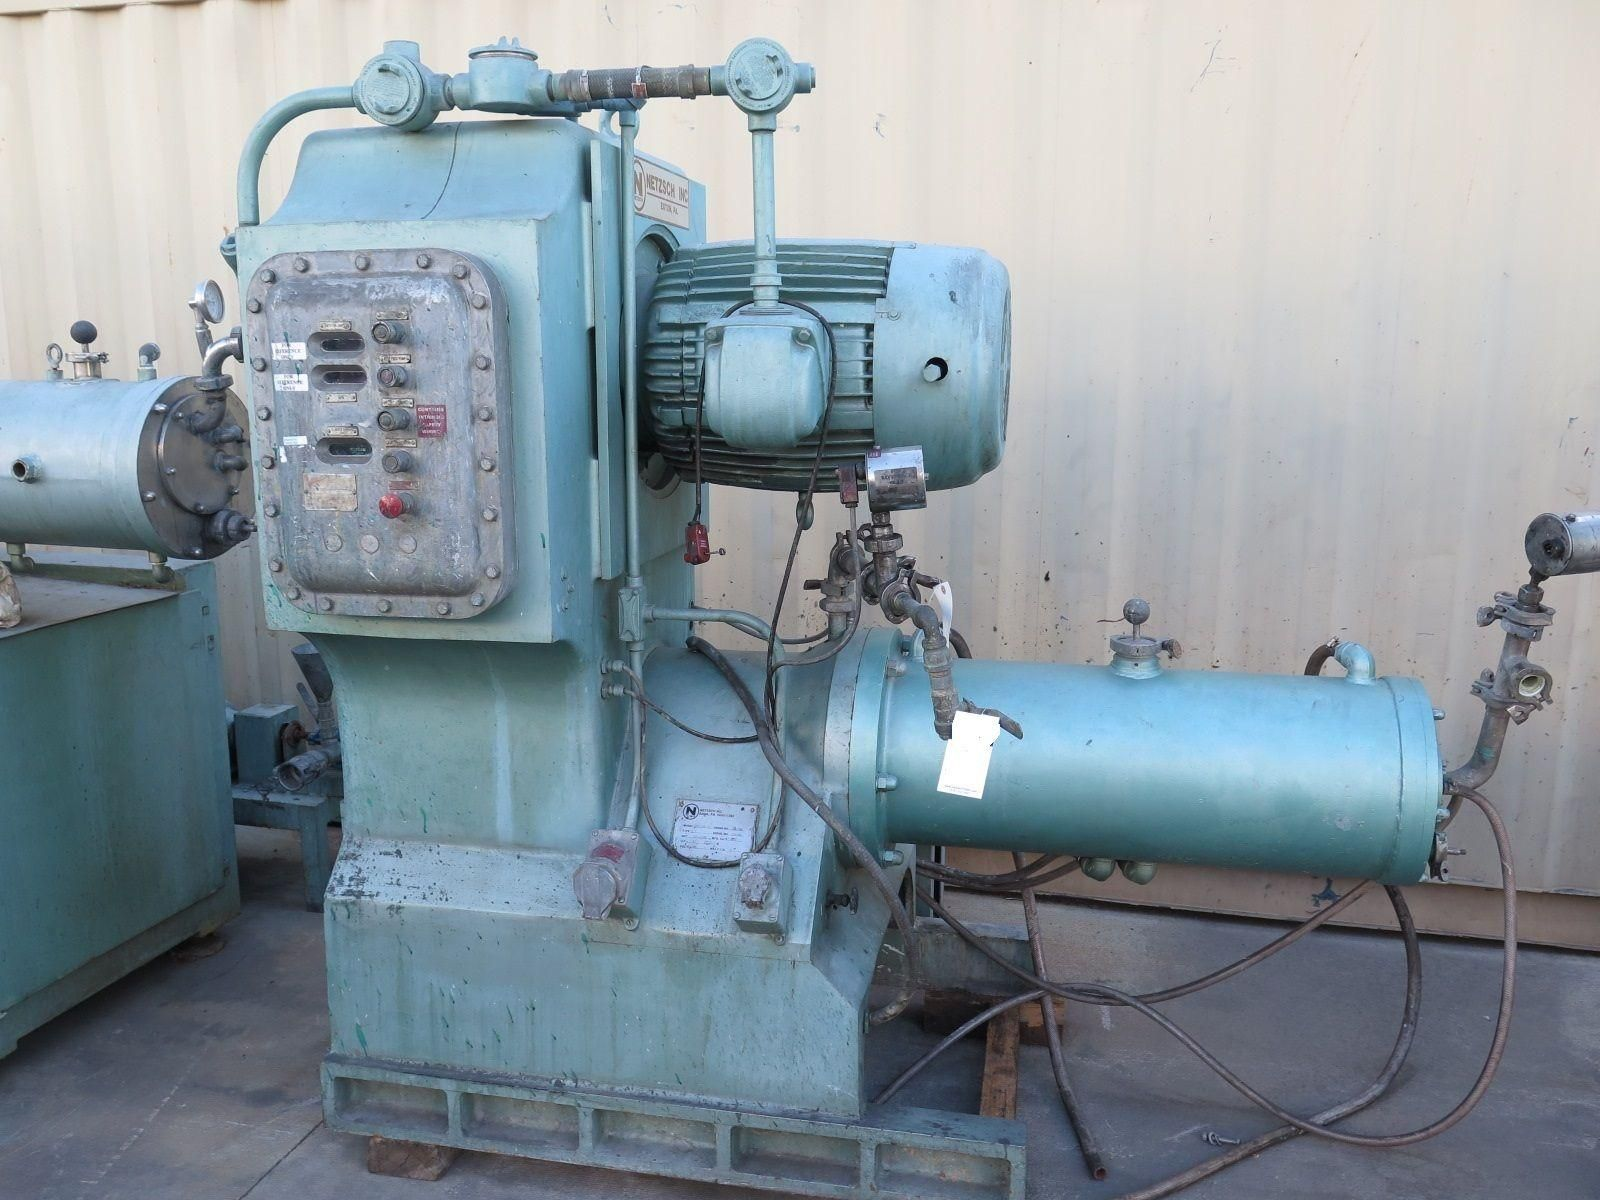 NETZSCH Model LMC60 (E) Grinding Media Mill 57 Liter Jacketed Chamber 50 HP 1989